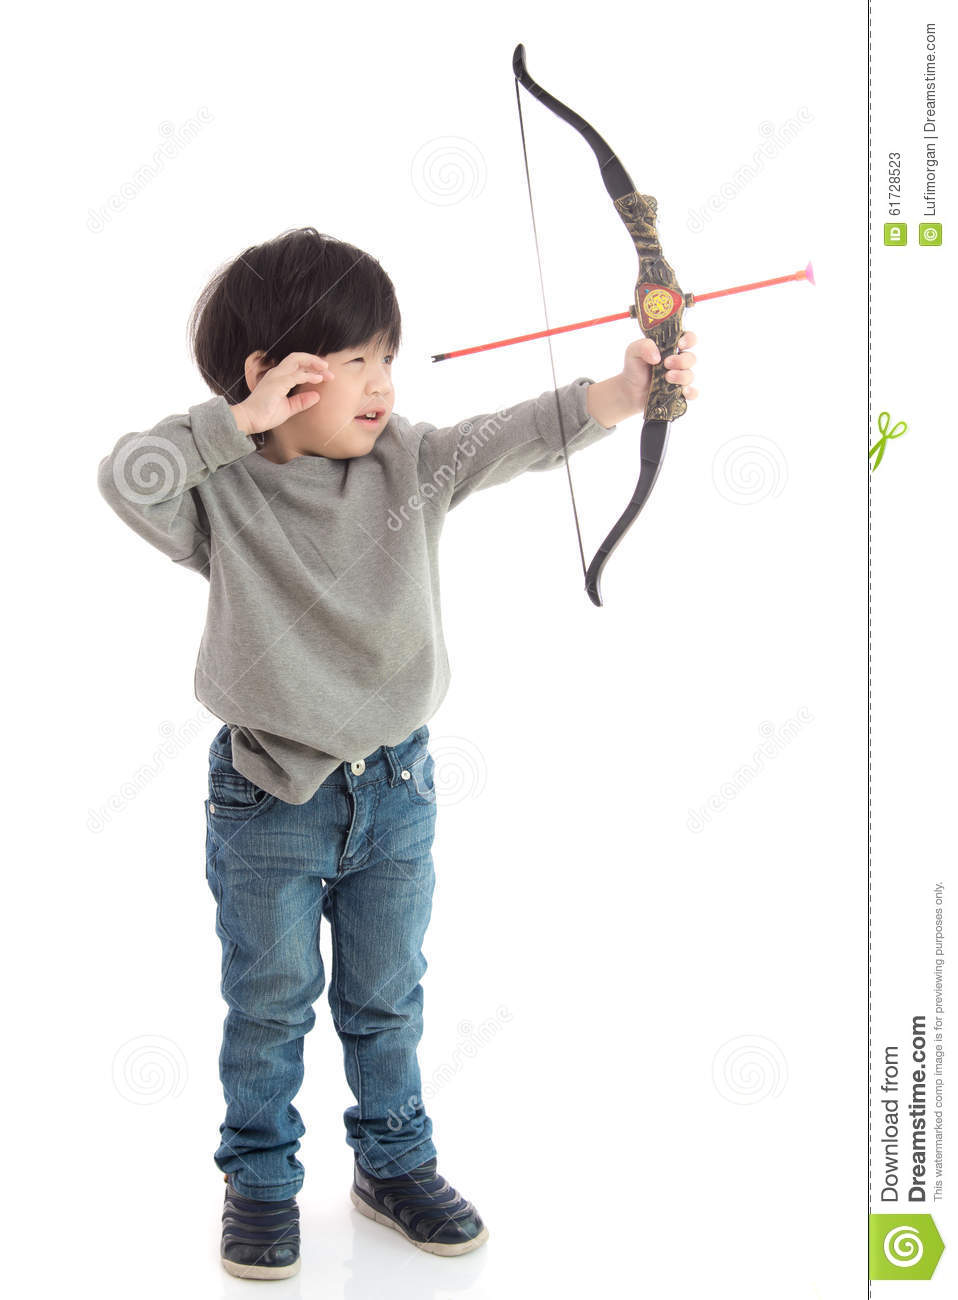 White Boys Toys : Cute asian boy playing toy bow stock image